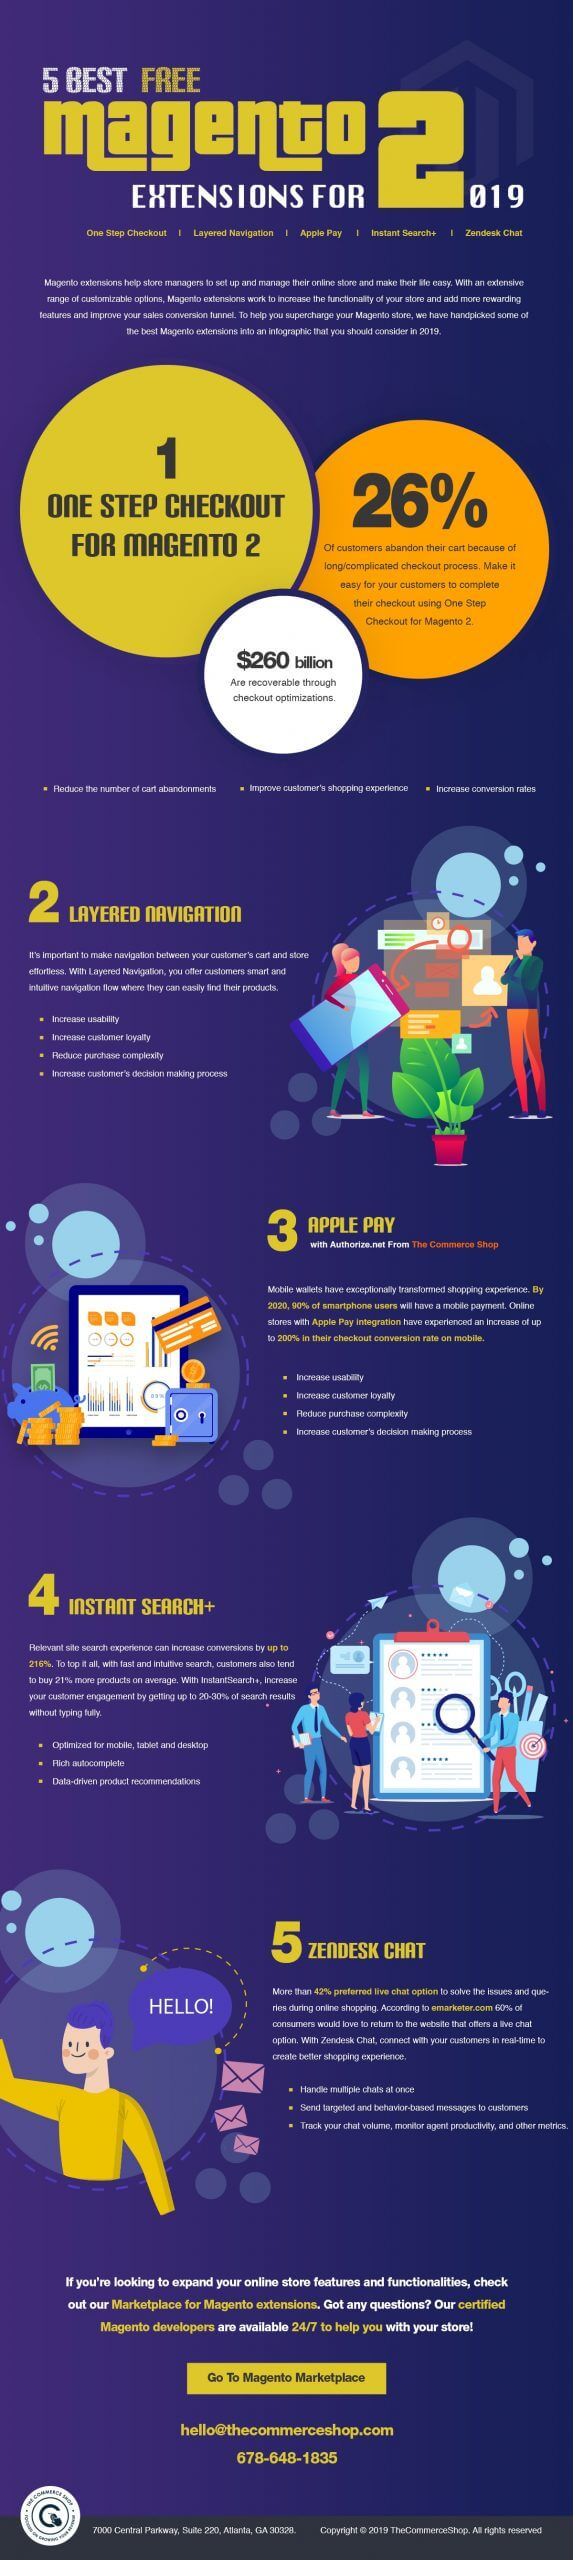 5 Best Free Magento 2 Extensions For 2019 [Infographic]